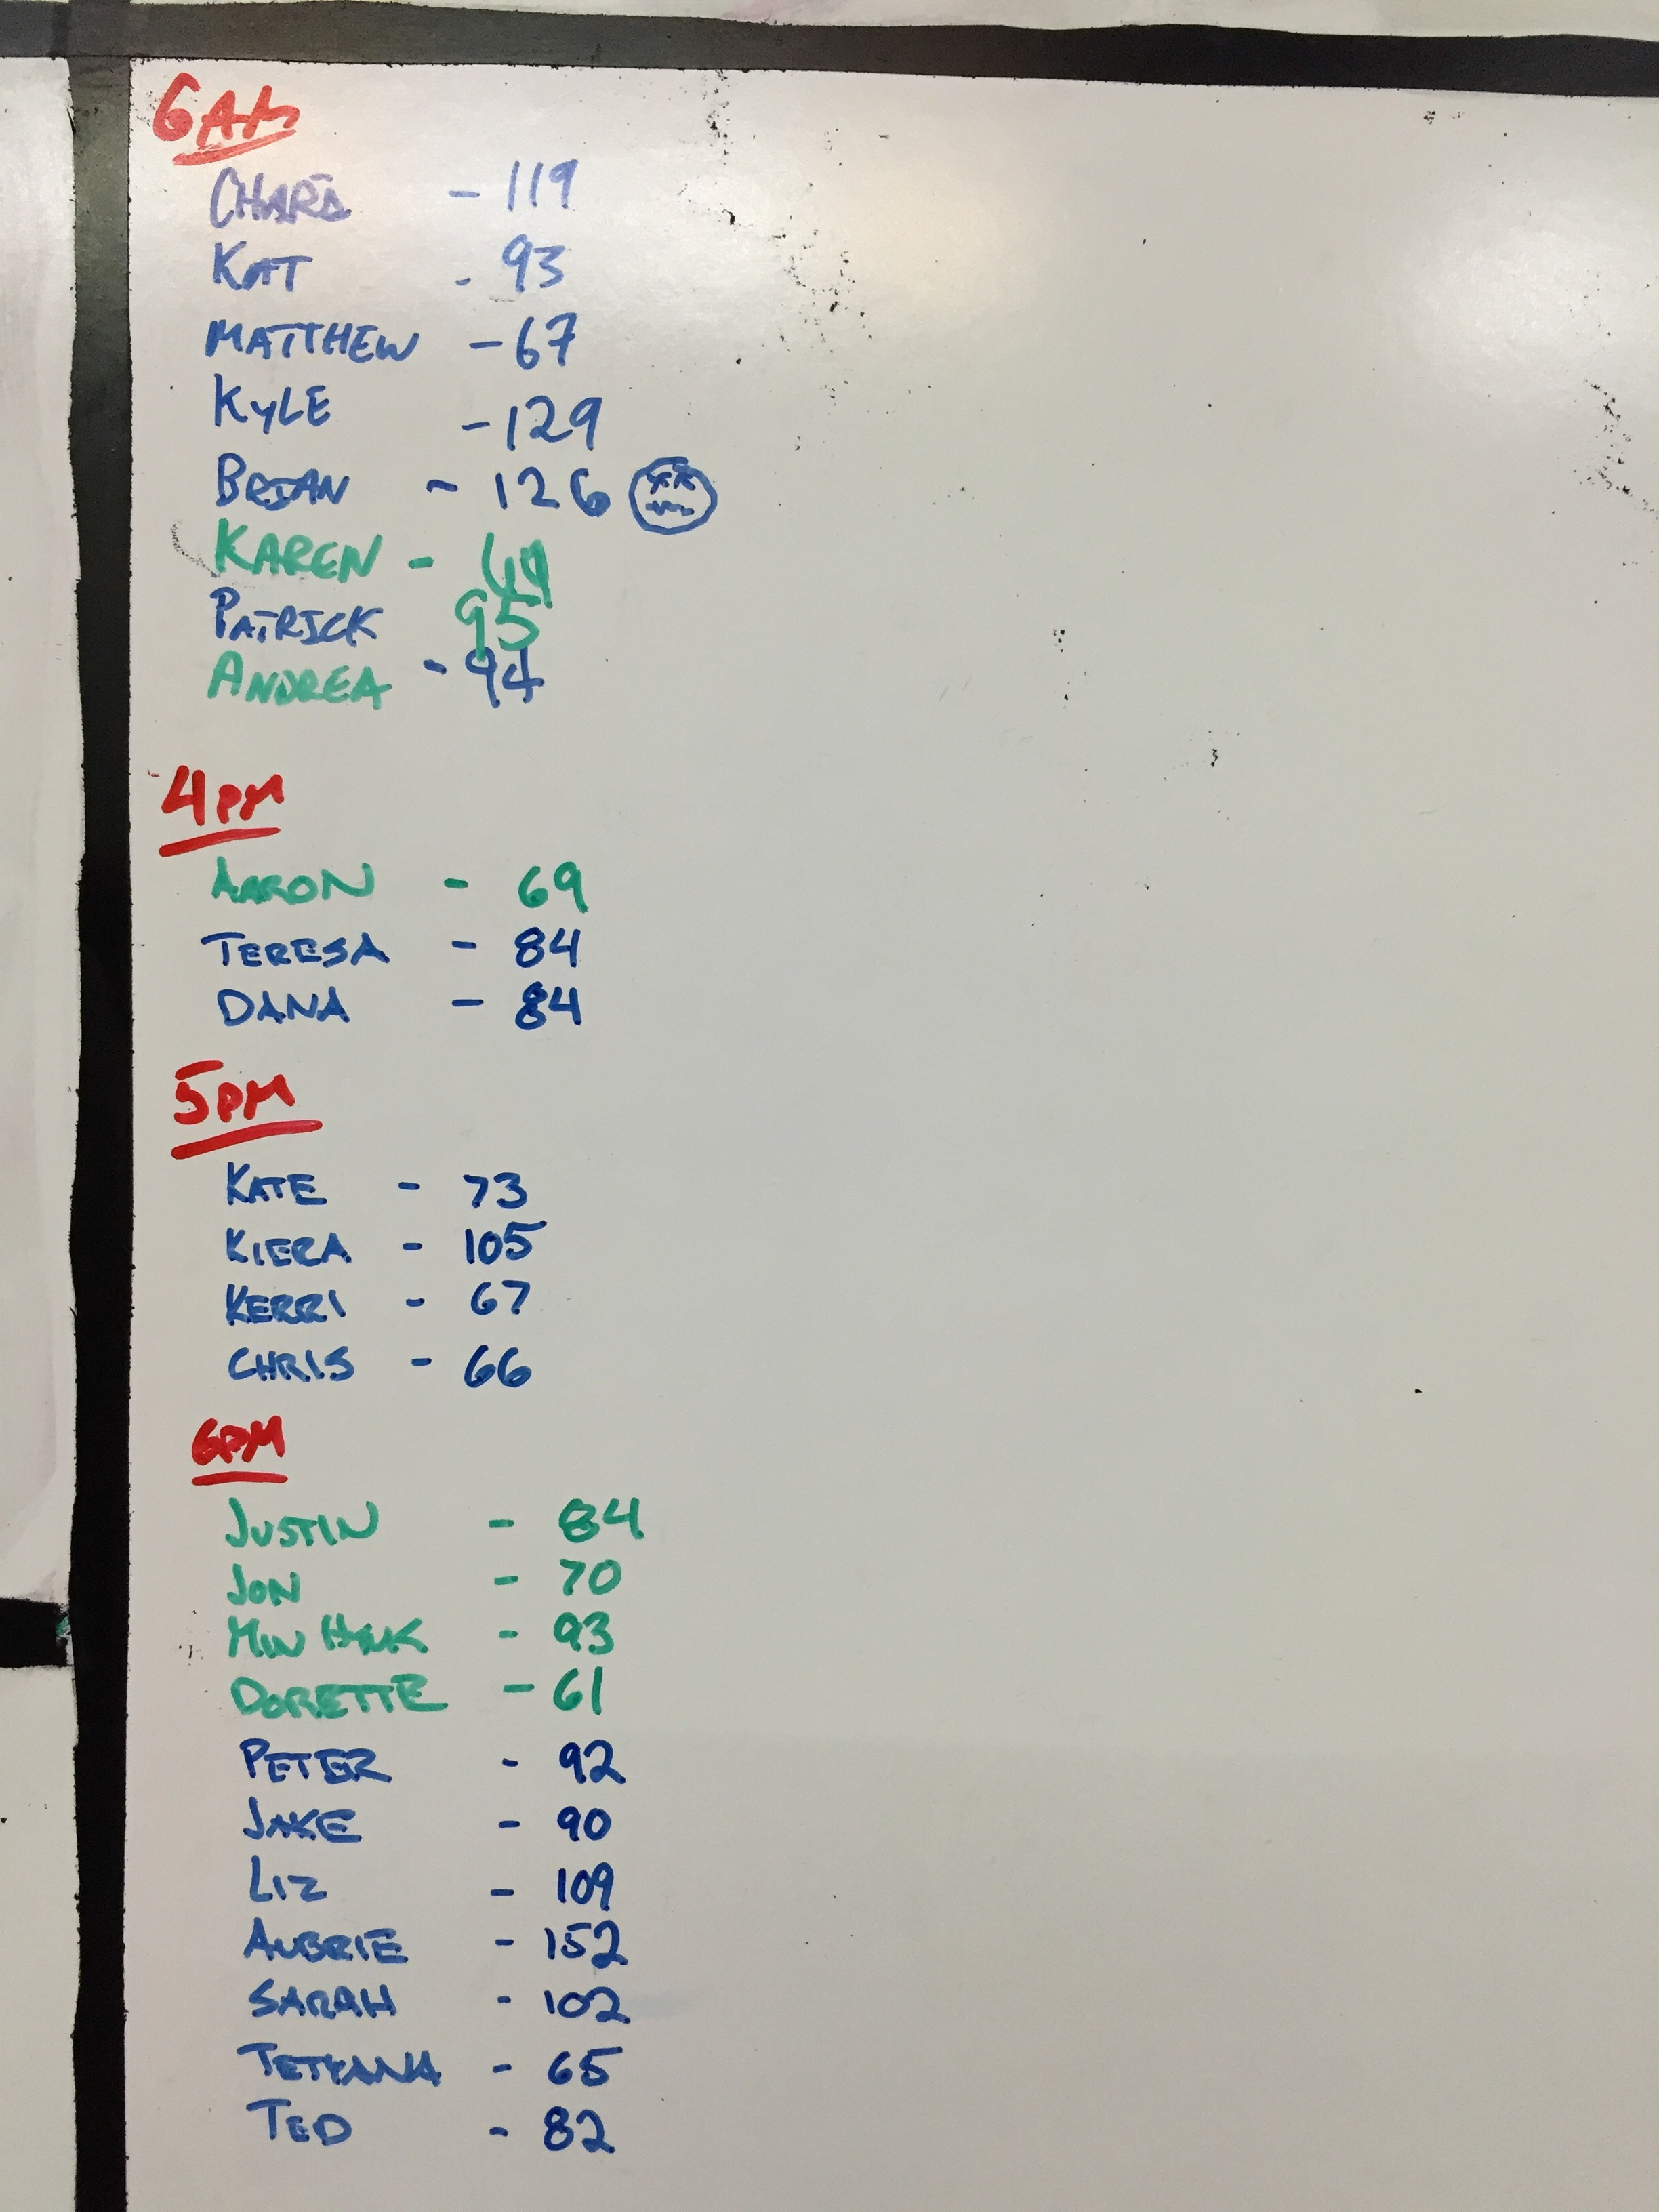 Sep 30 WOD Results